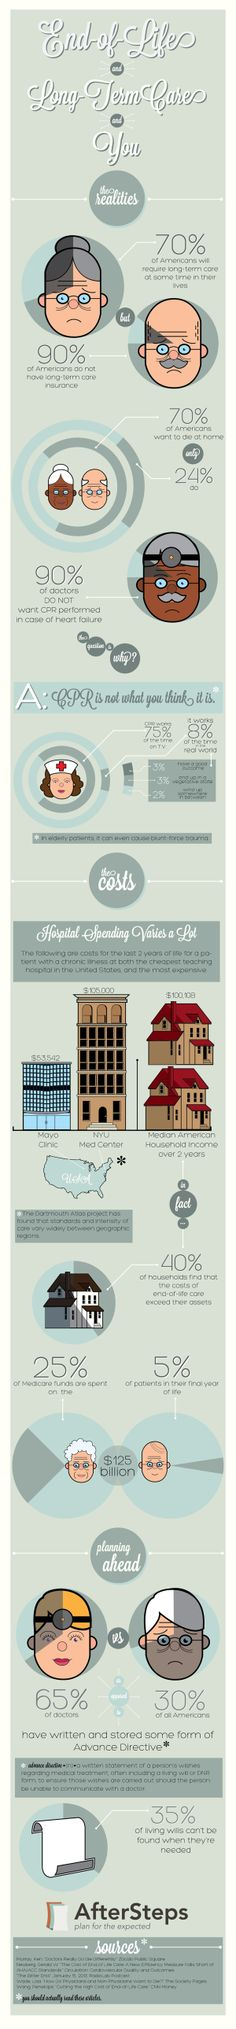 """Awesome infogrpahic by the amazing Alejandra Oliva: """"End-of-Life, Long-Term Care and You"""" via Behance"""